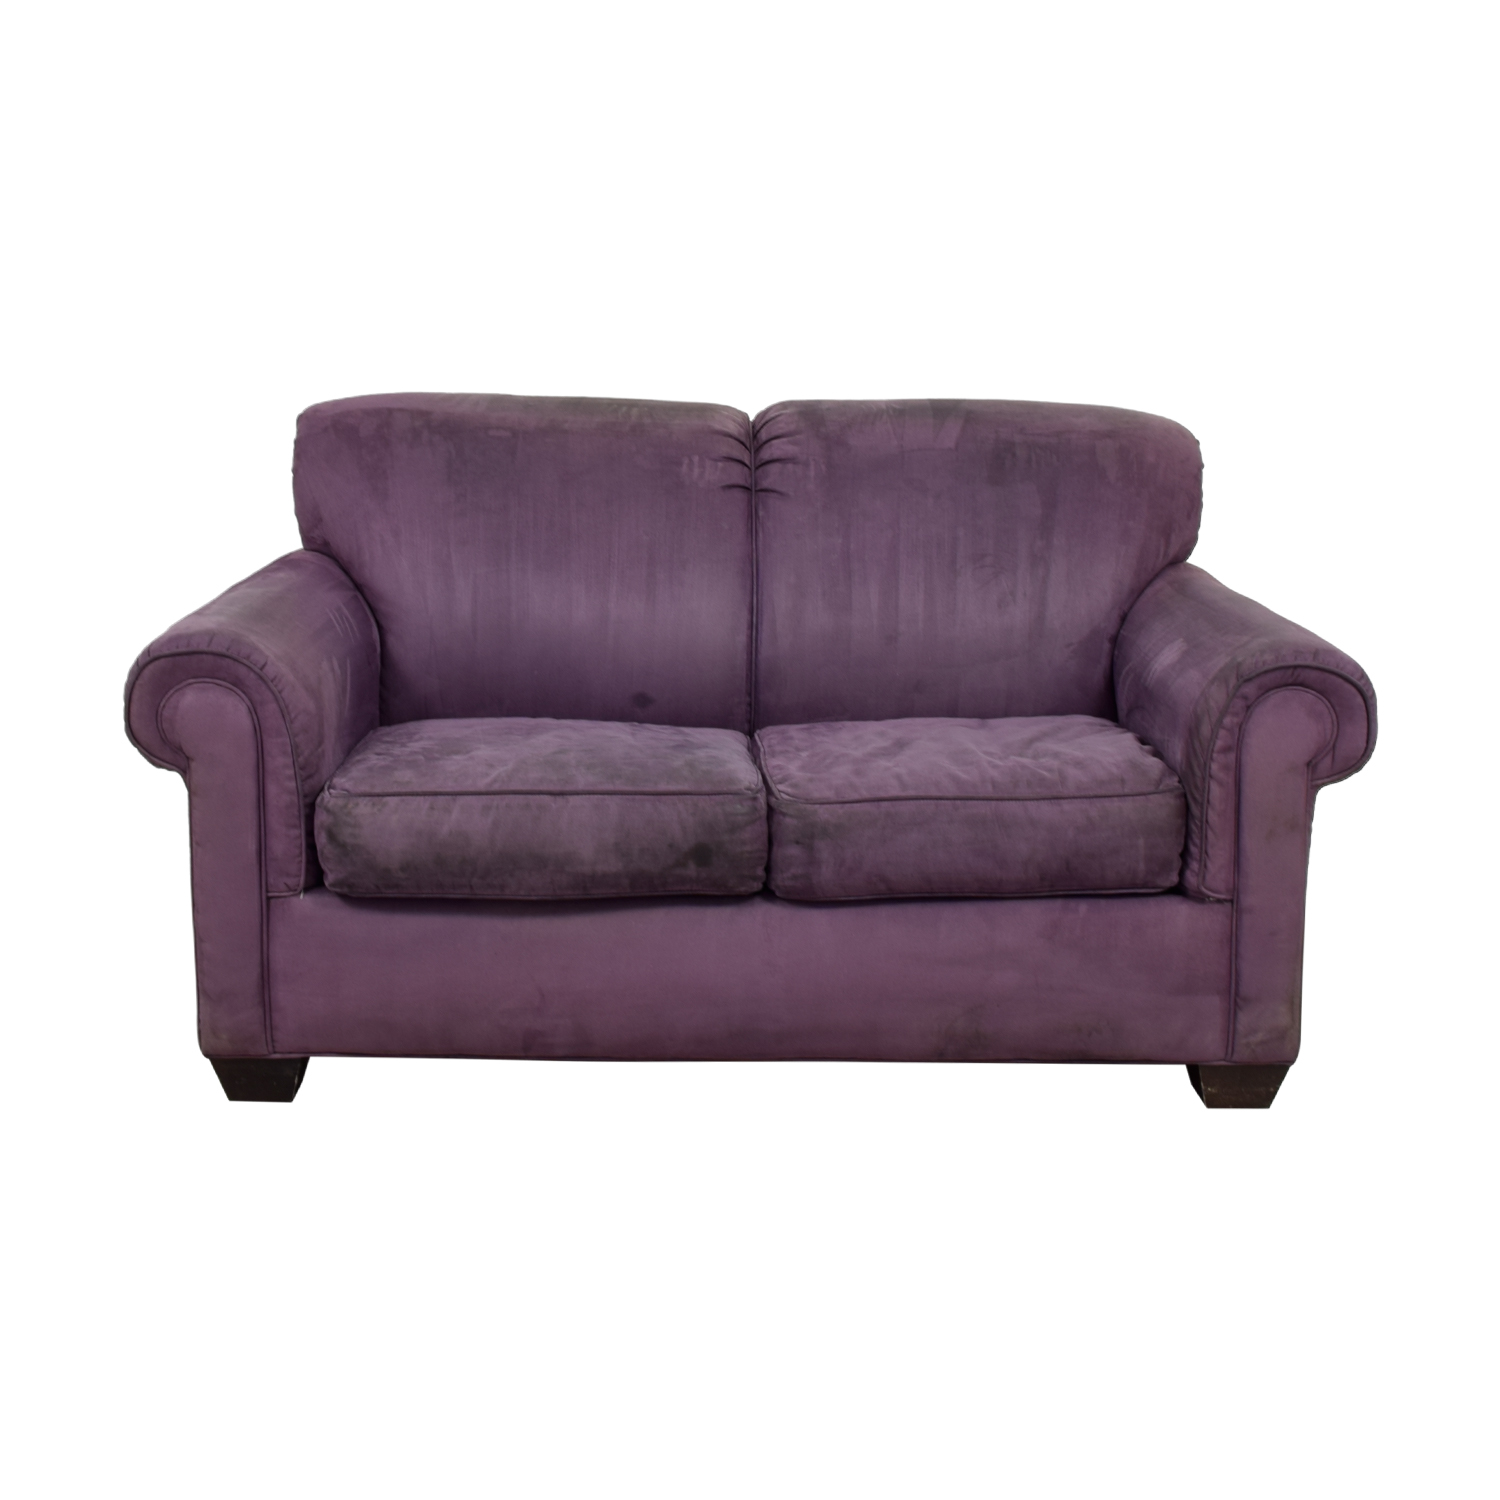 shop Rowe Purple Two-Cushion Loveseat Rowe